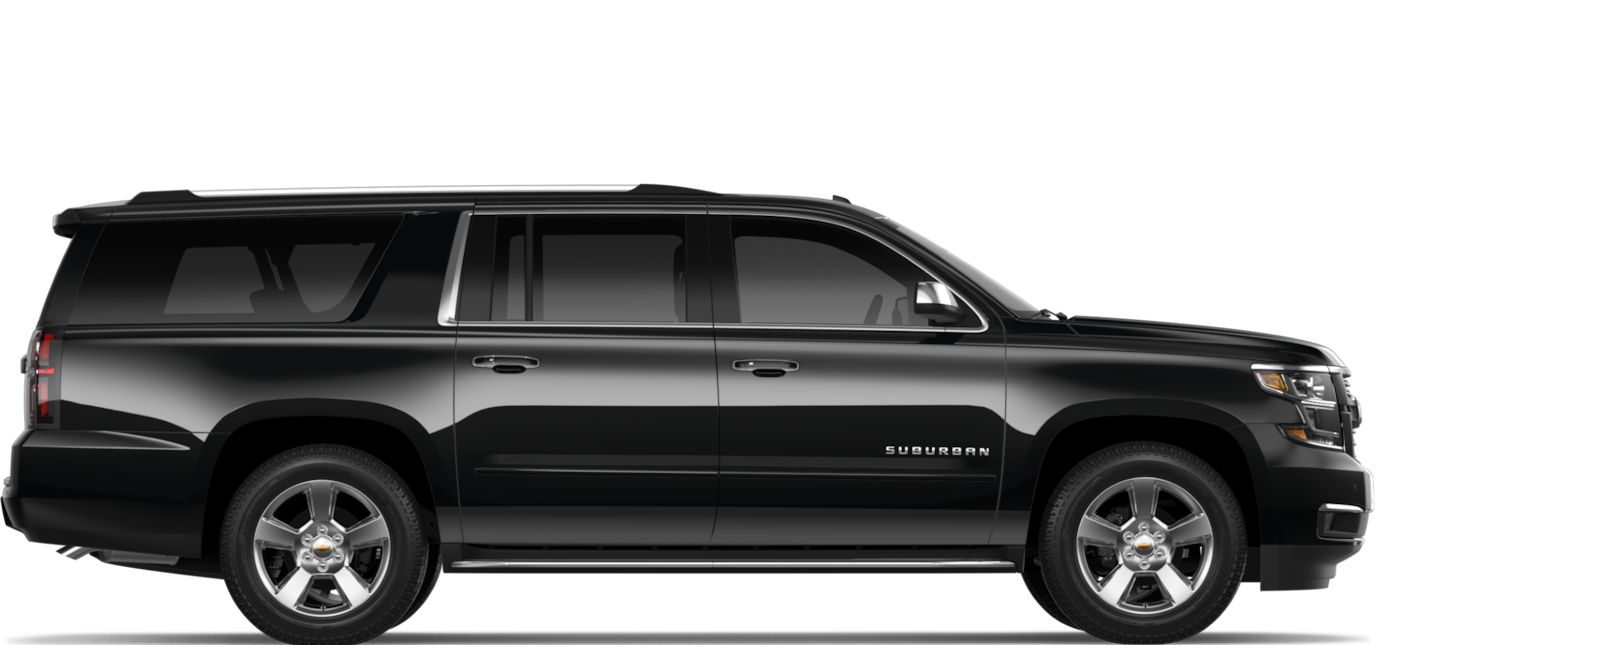 2018 suburban: large suv - 3 row suv | chevrolet